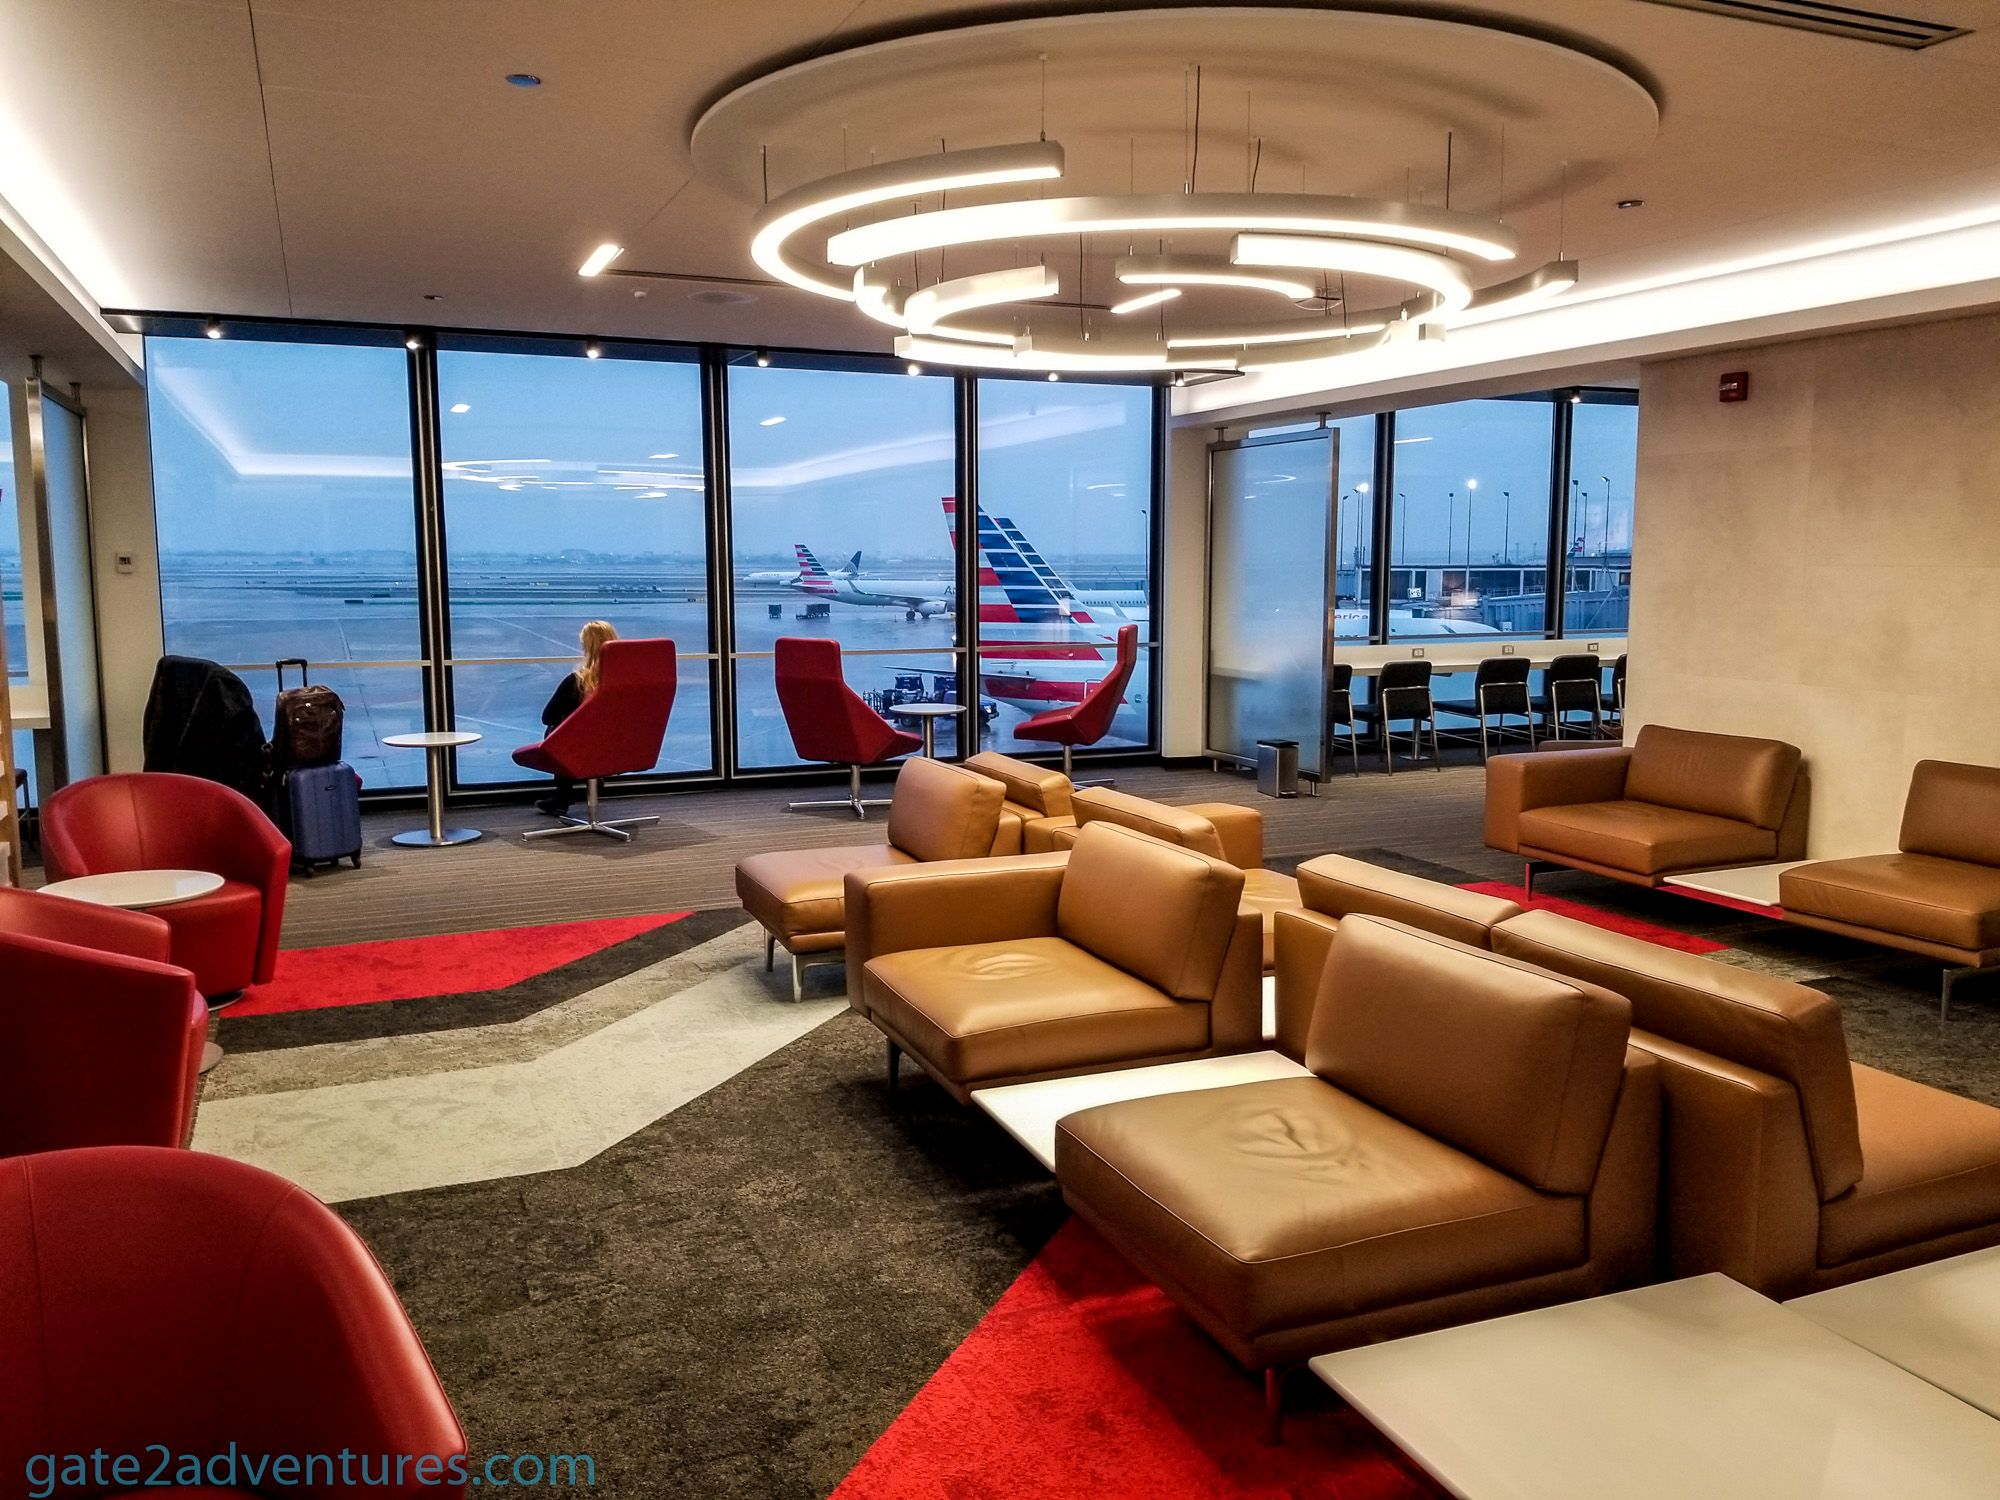 American Airlines Flagship Lounge Chicago O'Hare (ORD) – Terminal 3